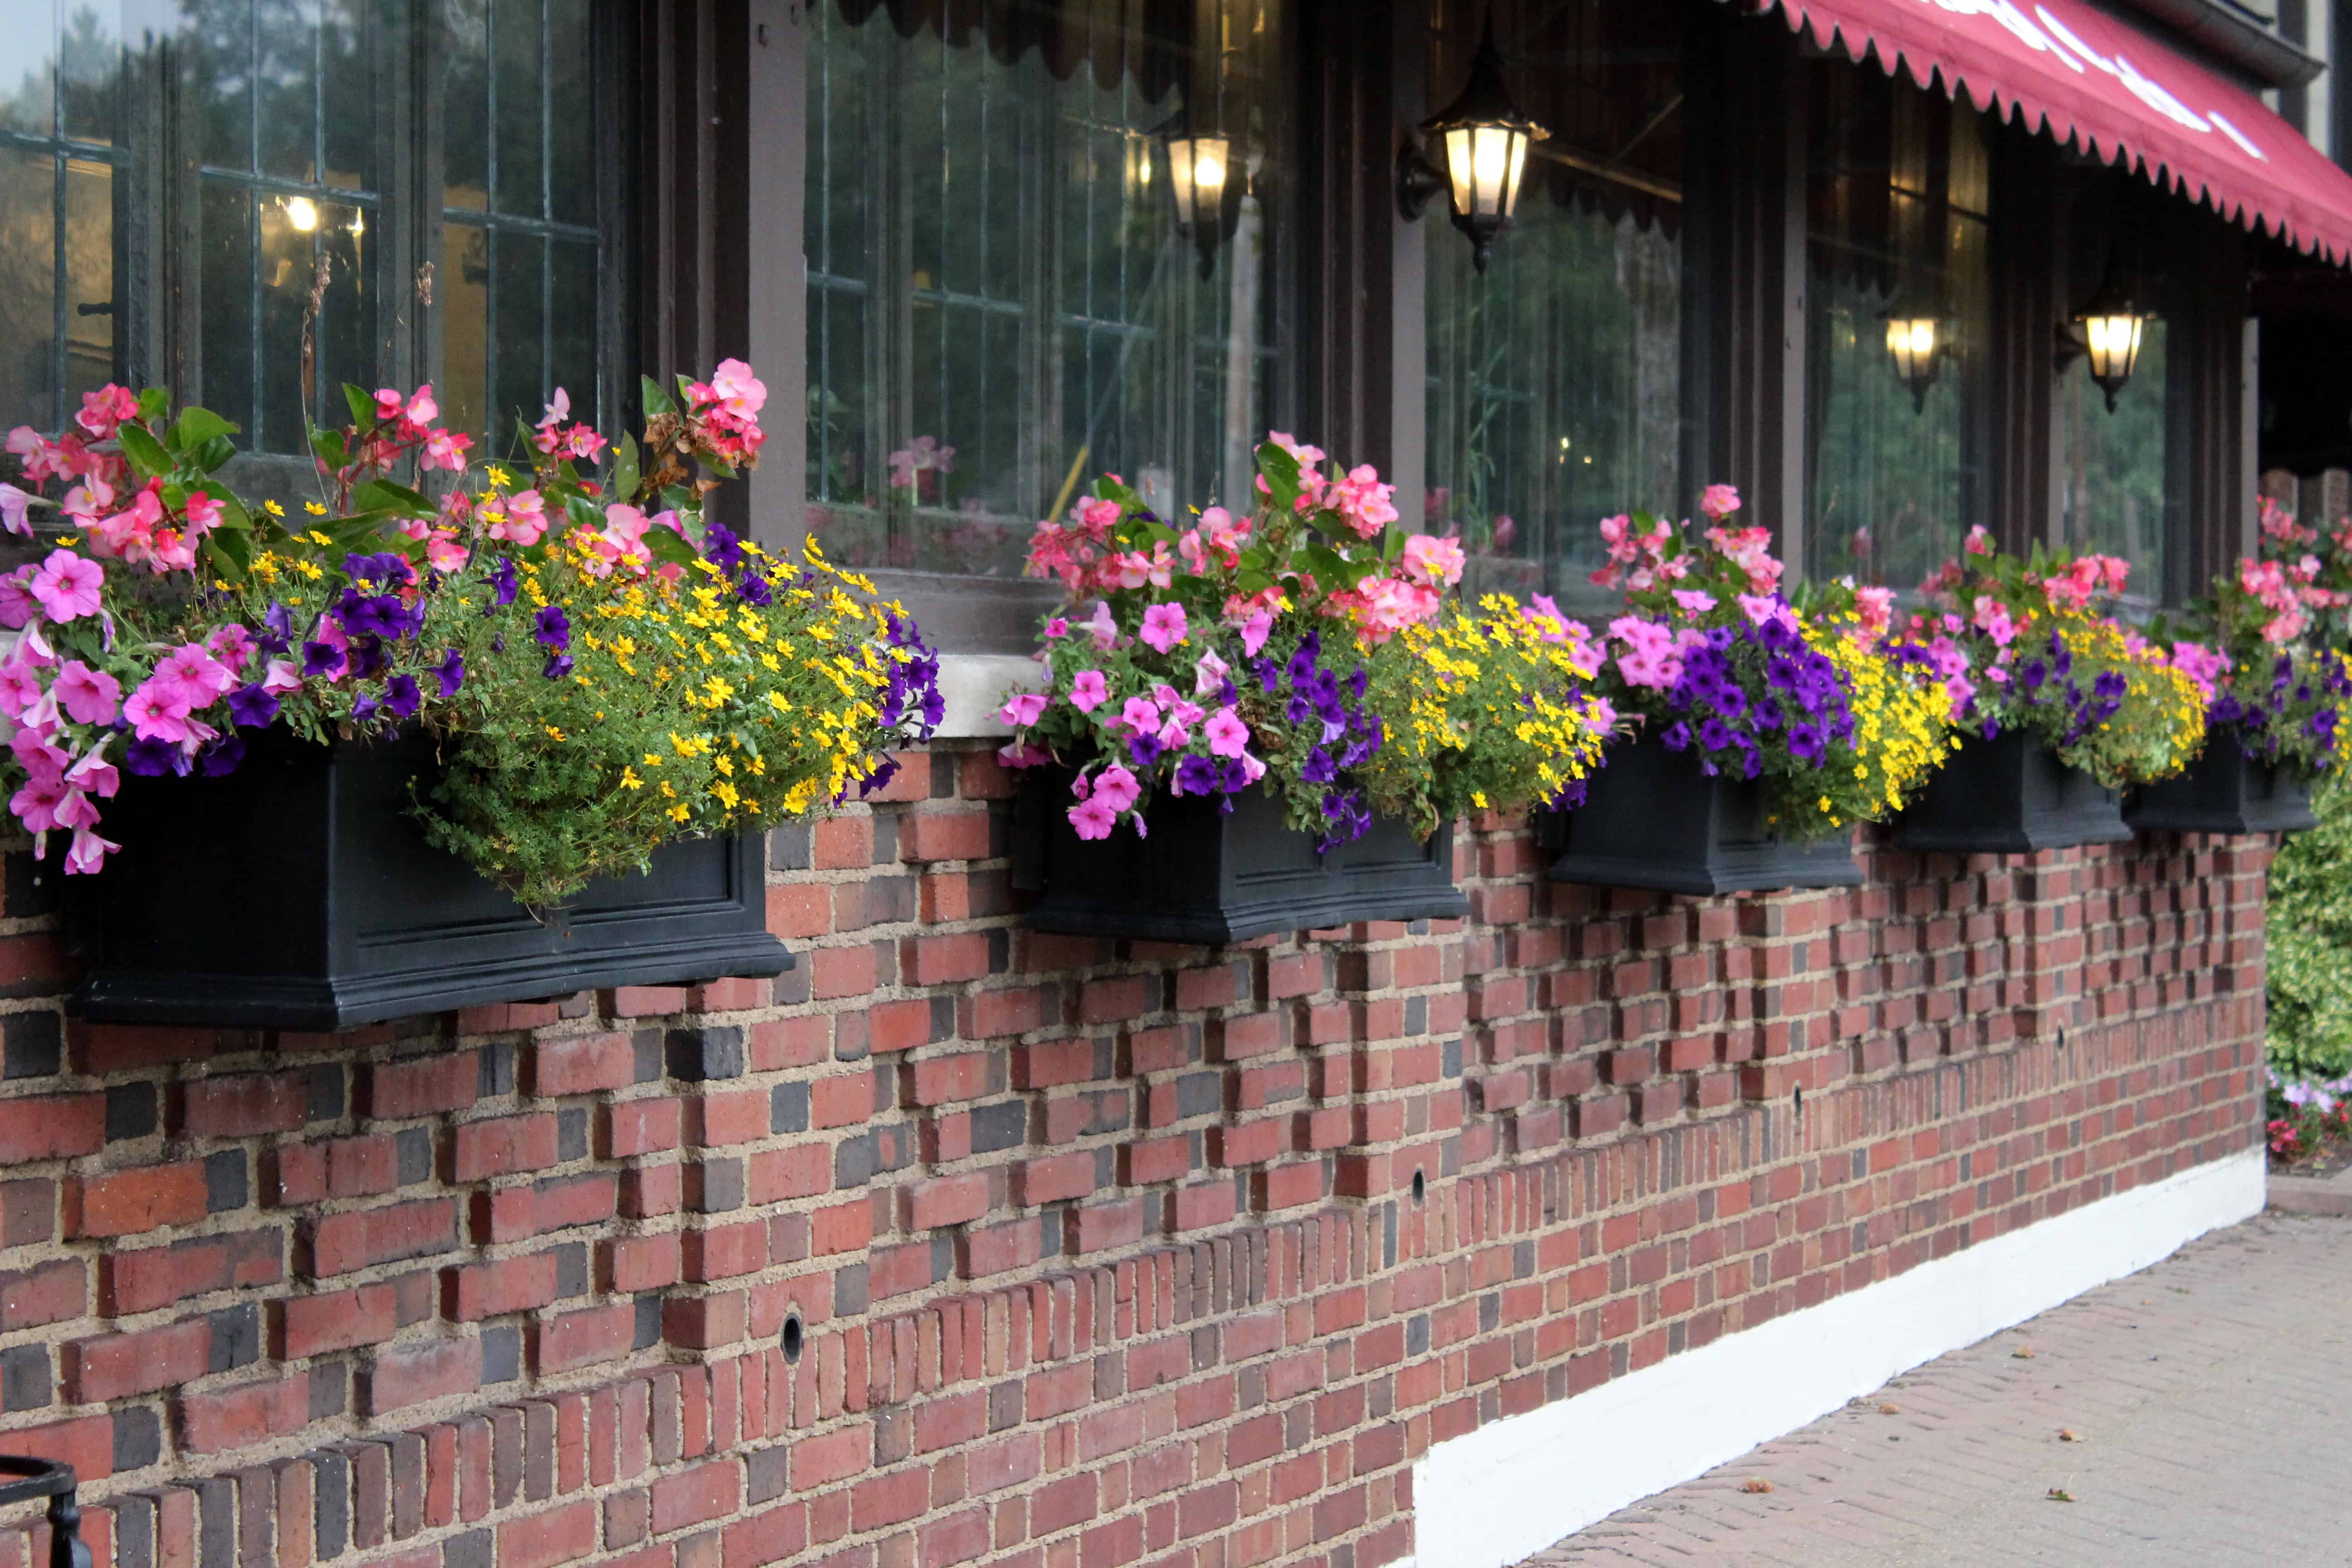 Flower Boxes at Niagara Falls Red Coach Inn